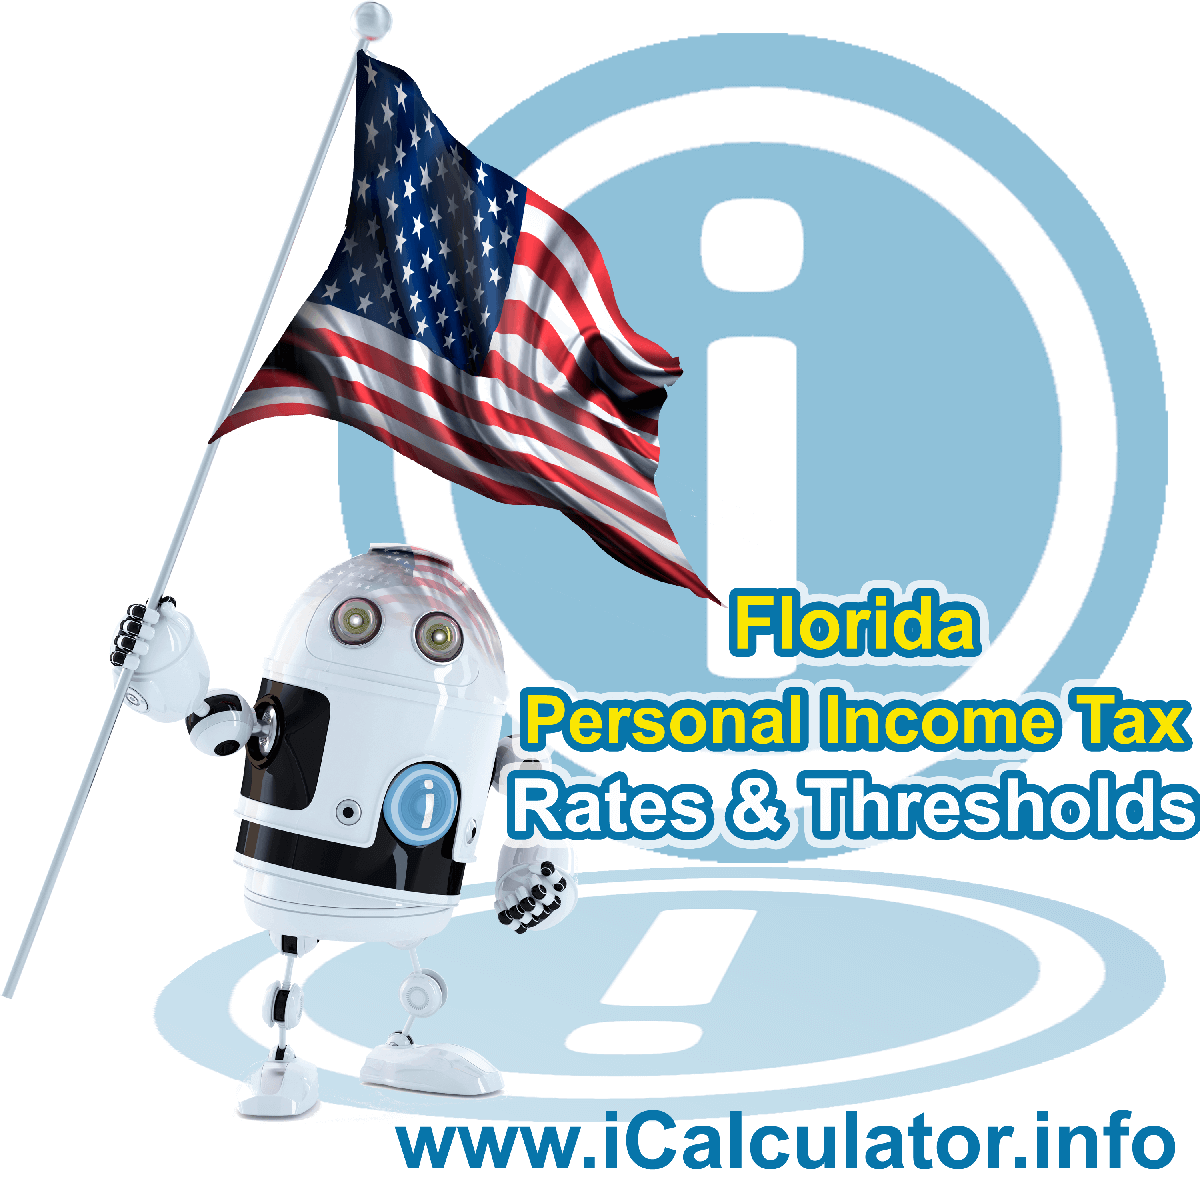 Florida State Tax Tables 2017. This image displays details of the Florida State Tax Tables for the 2017 tax return year which is provided in support of the 2017 US Tax Calculator